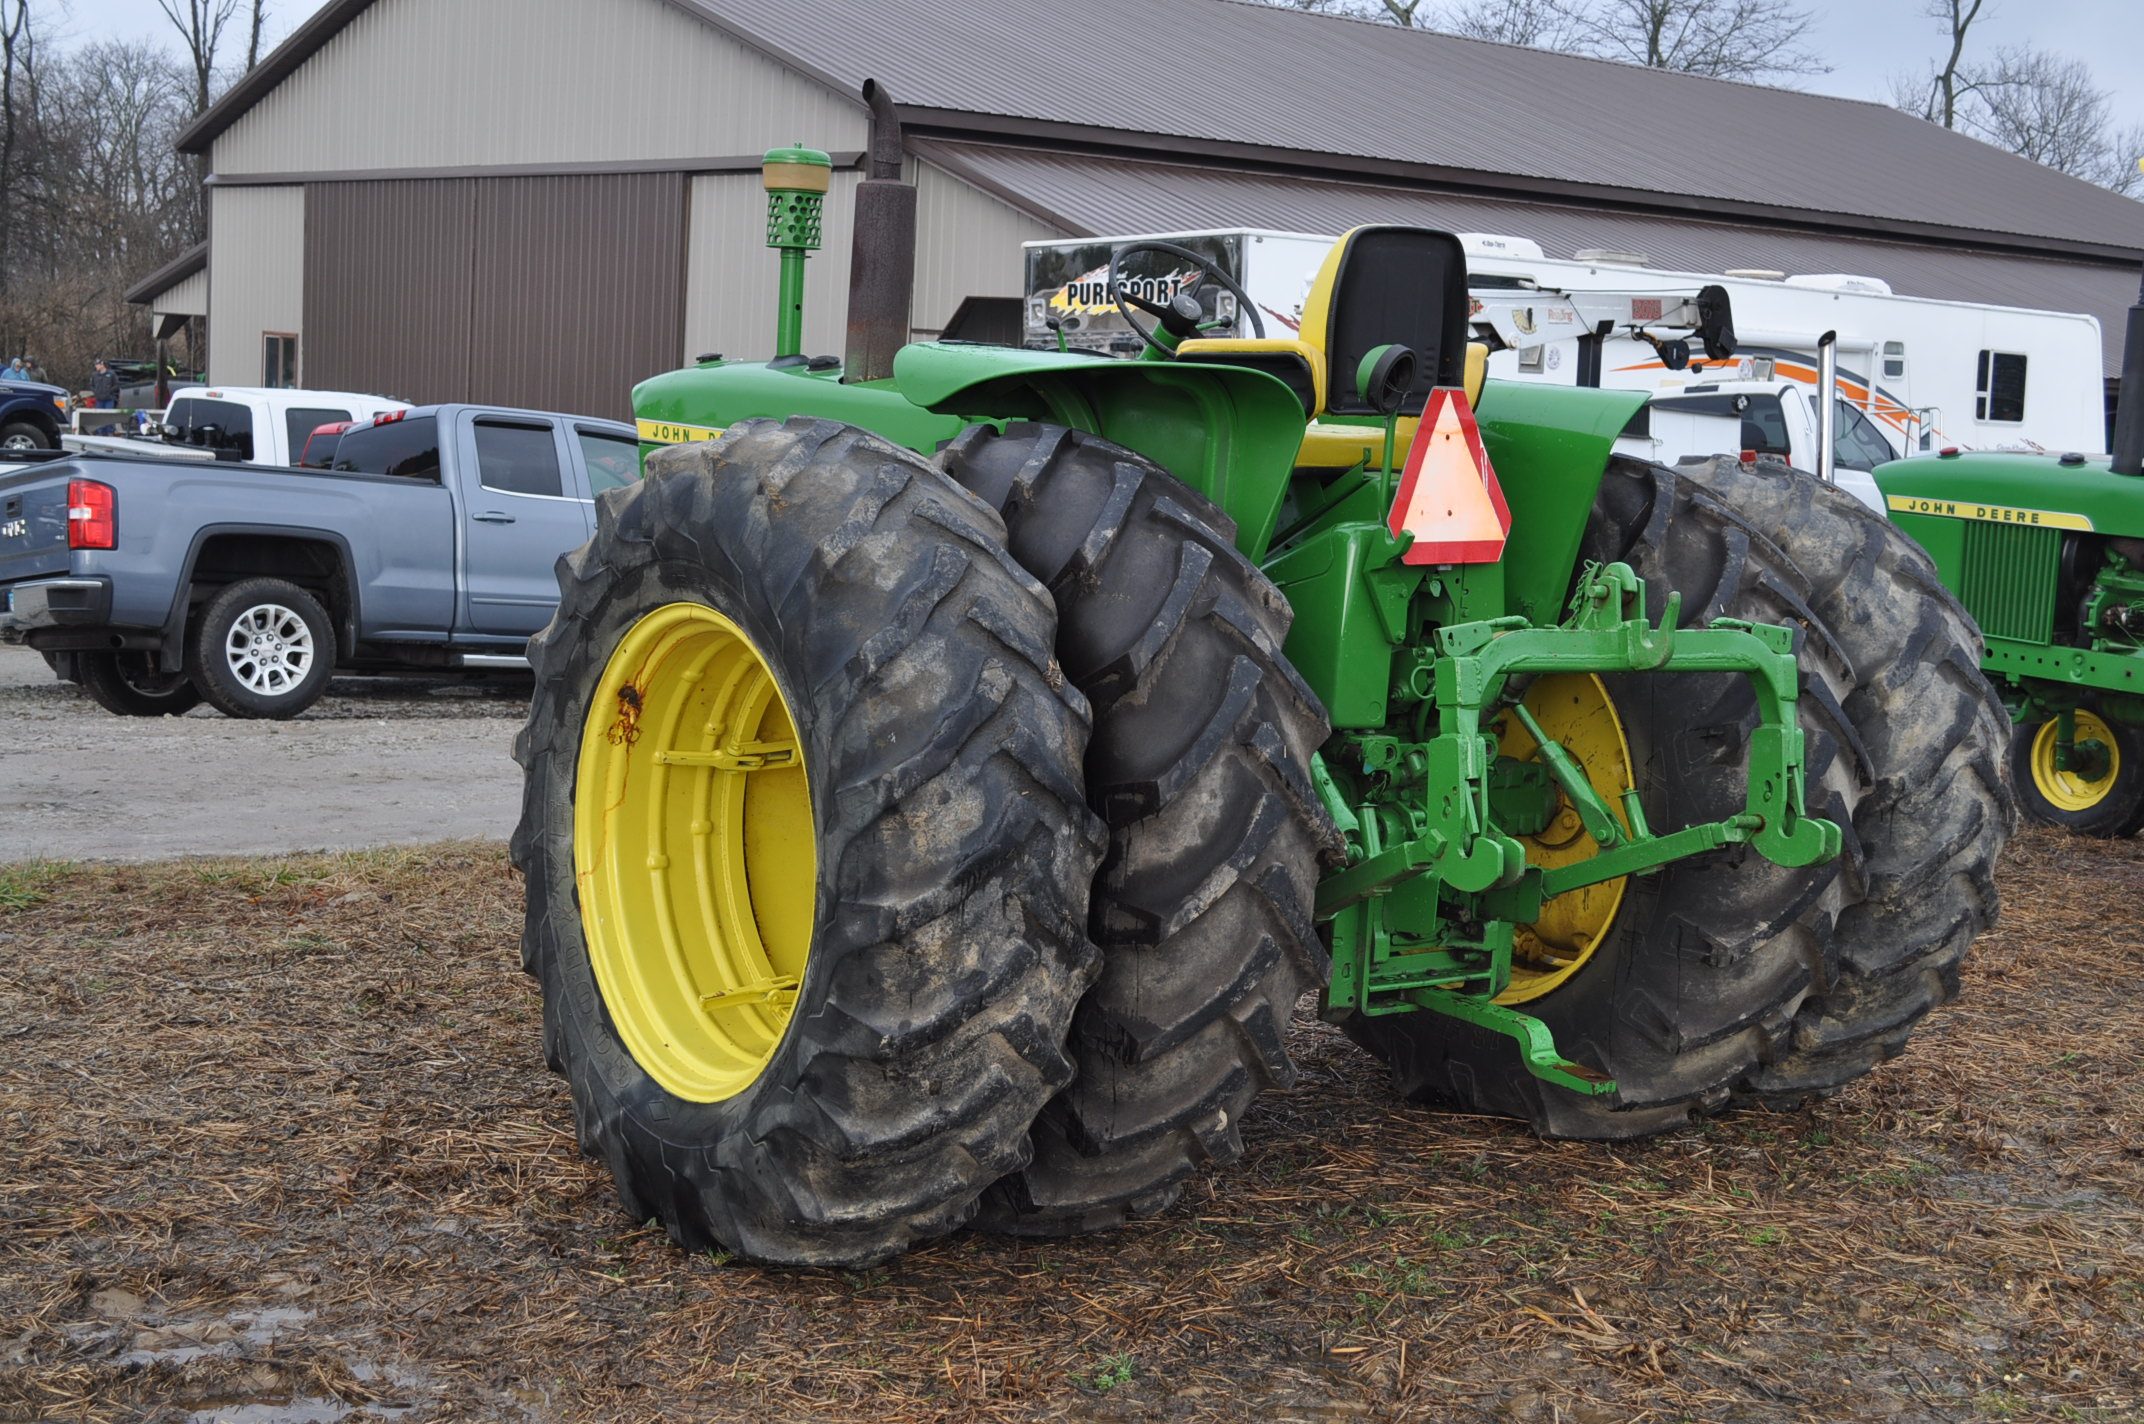 John Deere 3020 tractor, diesel, 18.4-34 rear, clamp on duals, 11L-15 narrow front, Syncro, 2 - Image 2 of 15